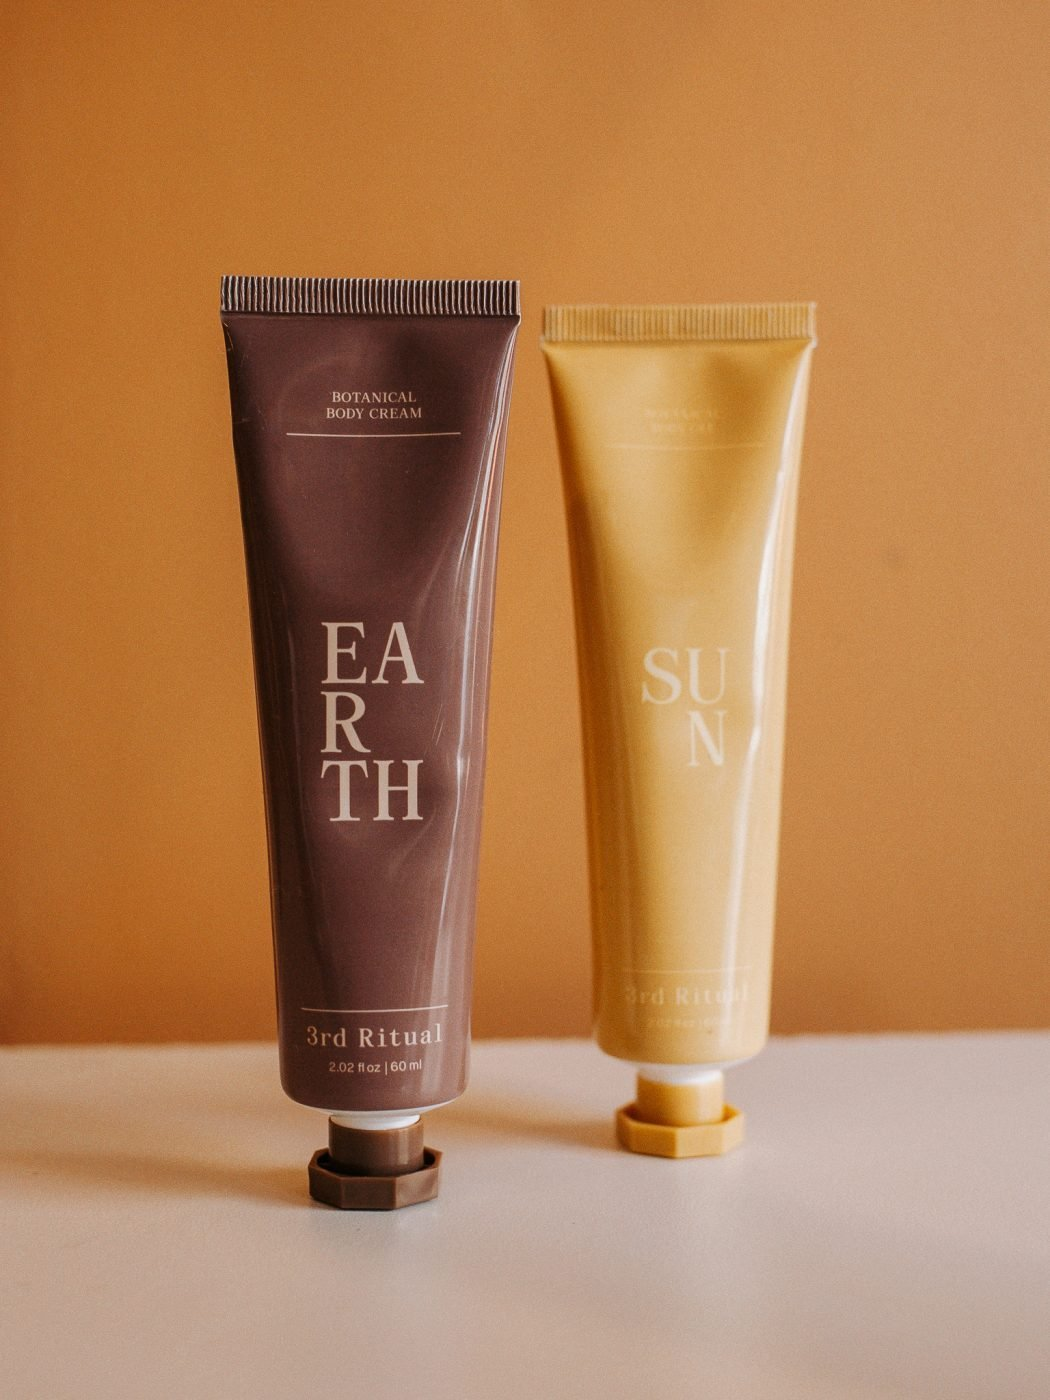 Earth & Sun body lotions from 3rd Ritual